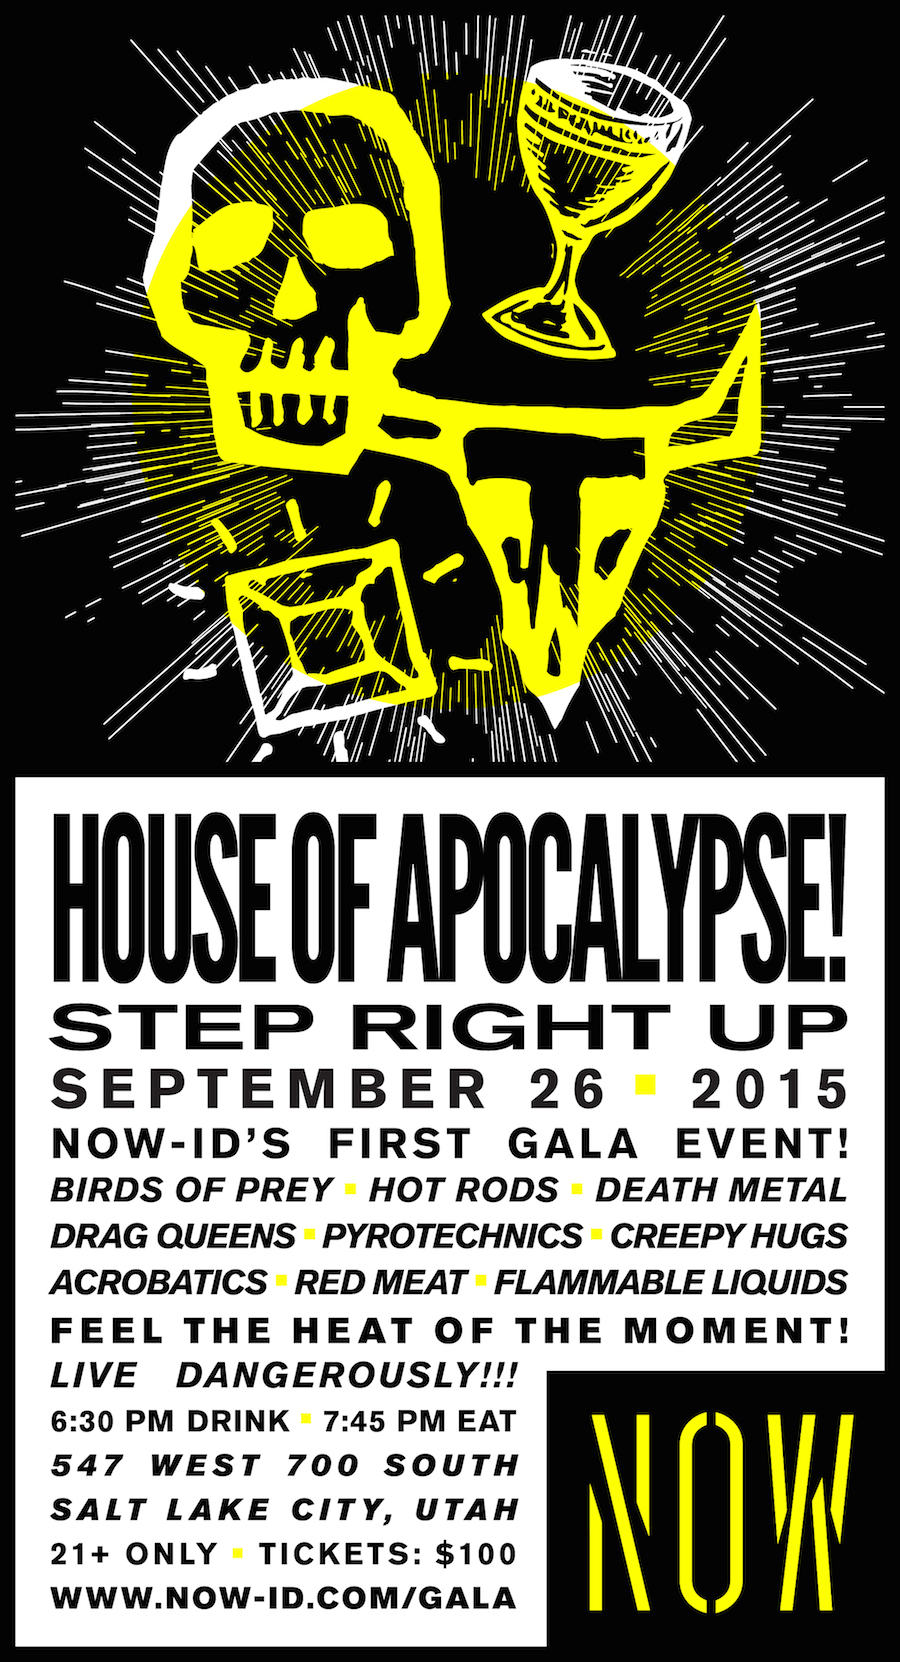 HOUSE OF POCALYPSE2